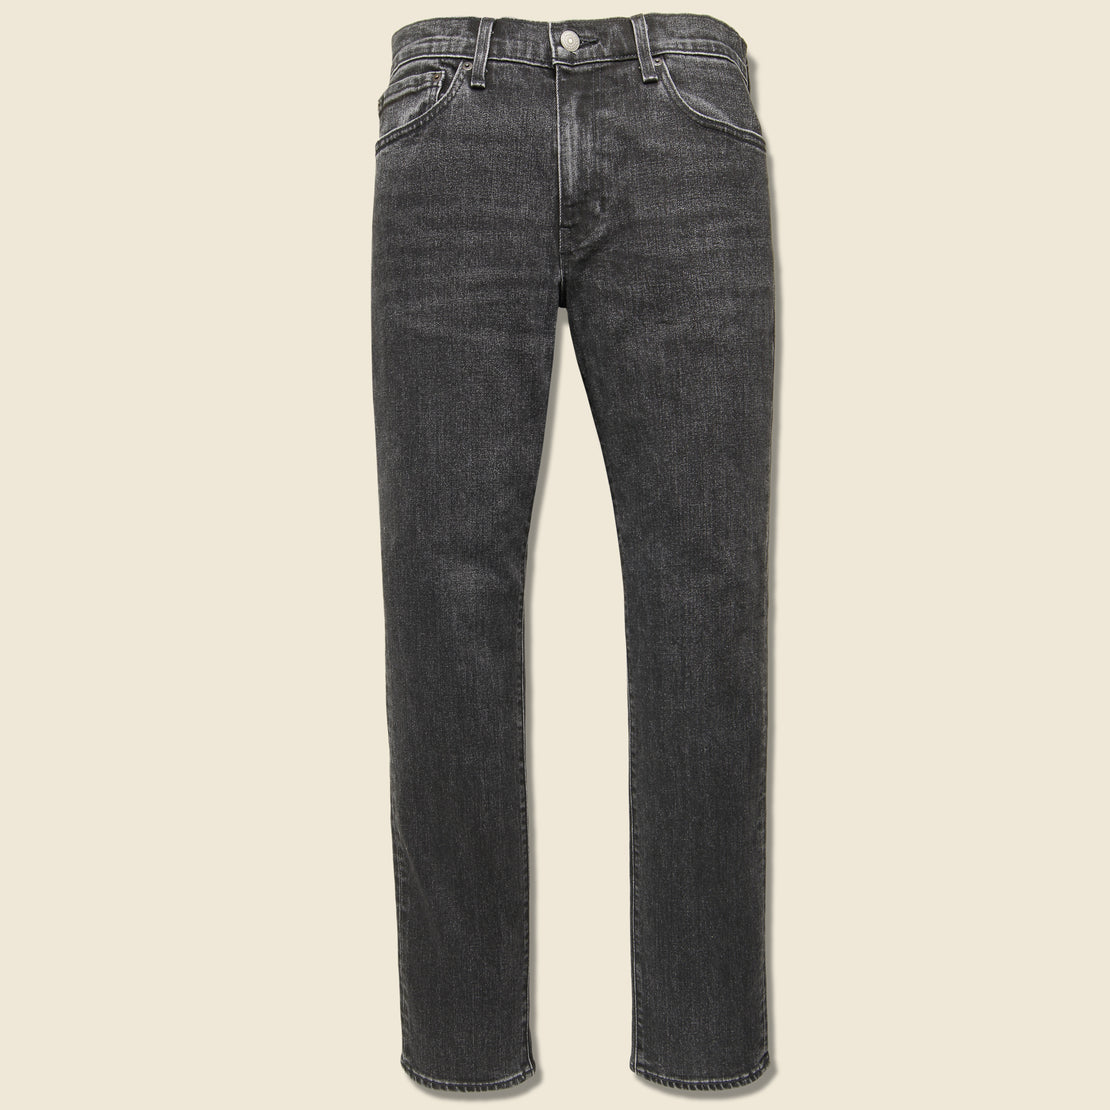 Levis Premium 511 Slim Fit Jean - Chile Warm